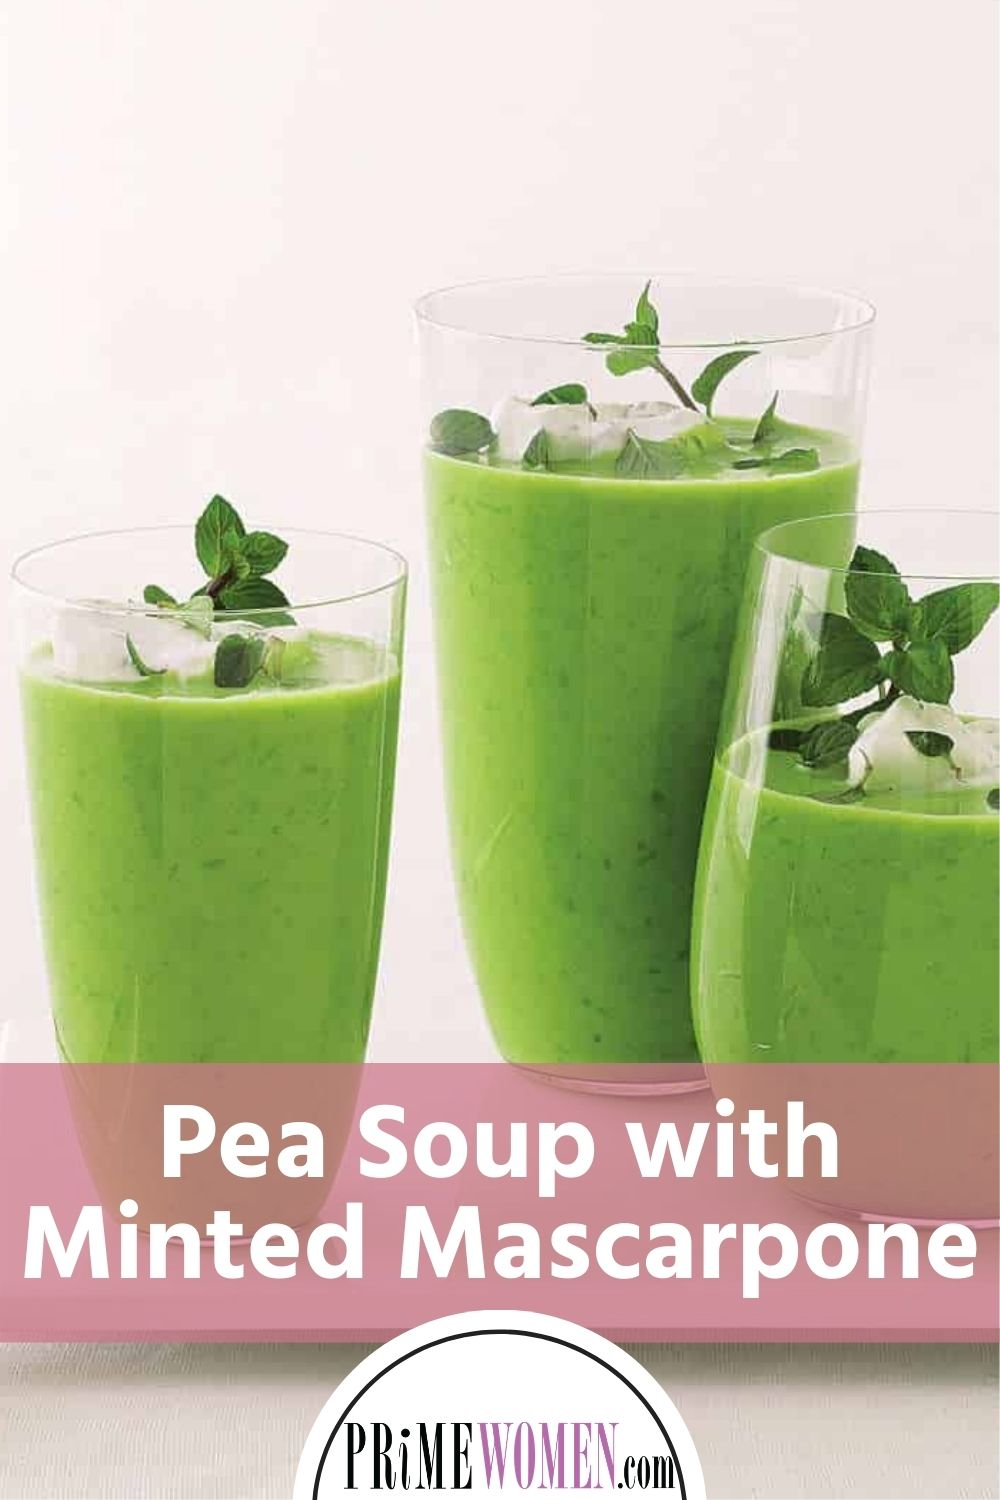 Pea Soup with Minted Mascarpone